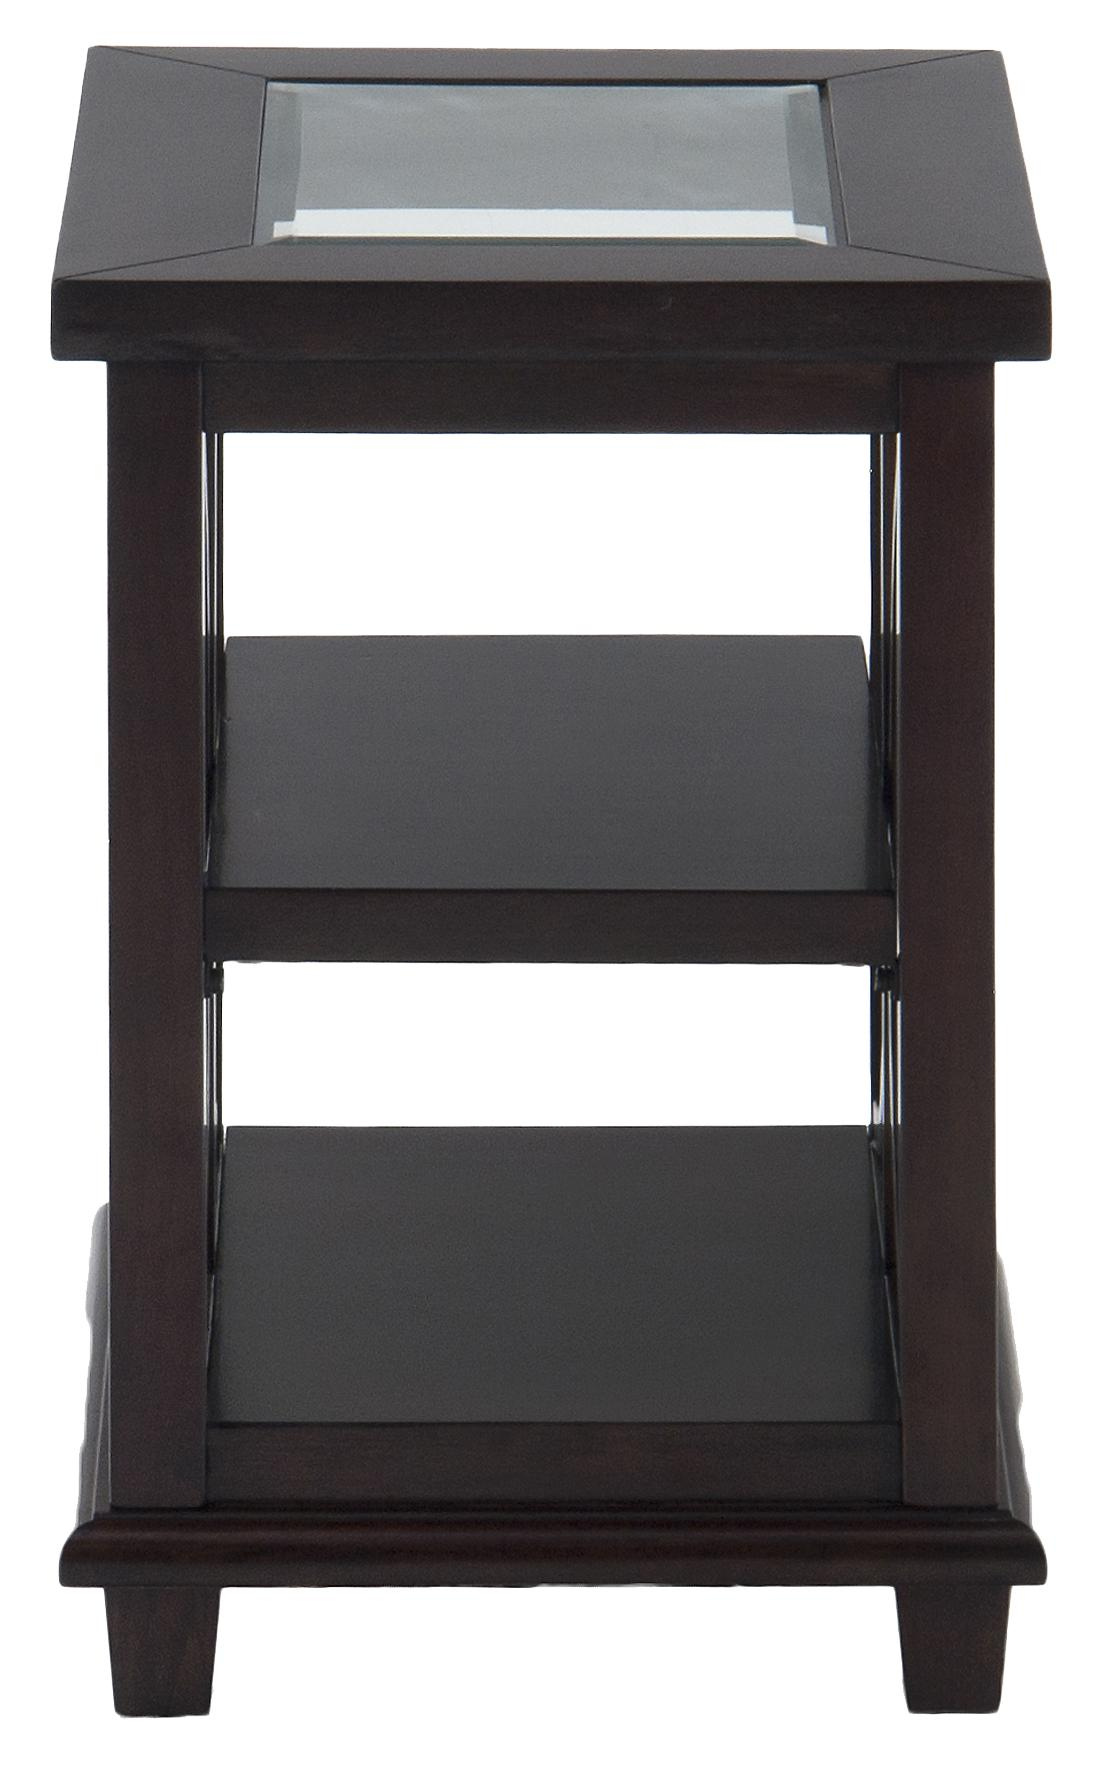 Panama Brown Chairside Table w/ Glass Top by Jofran at Godby Home Furnishings